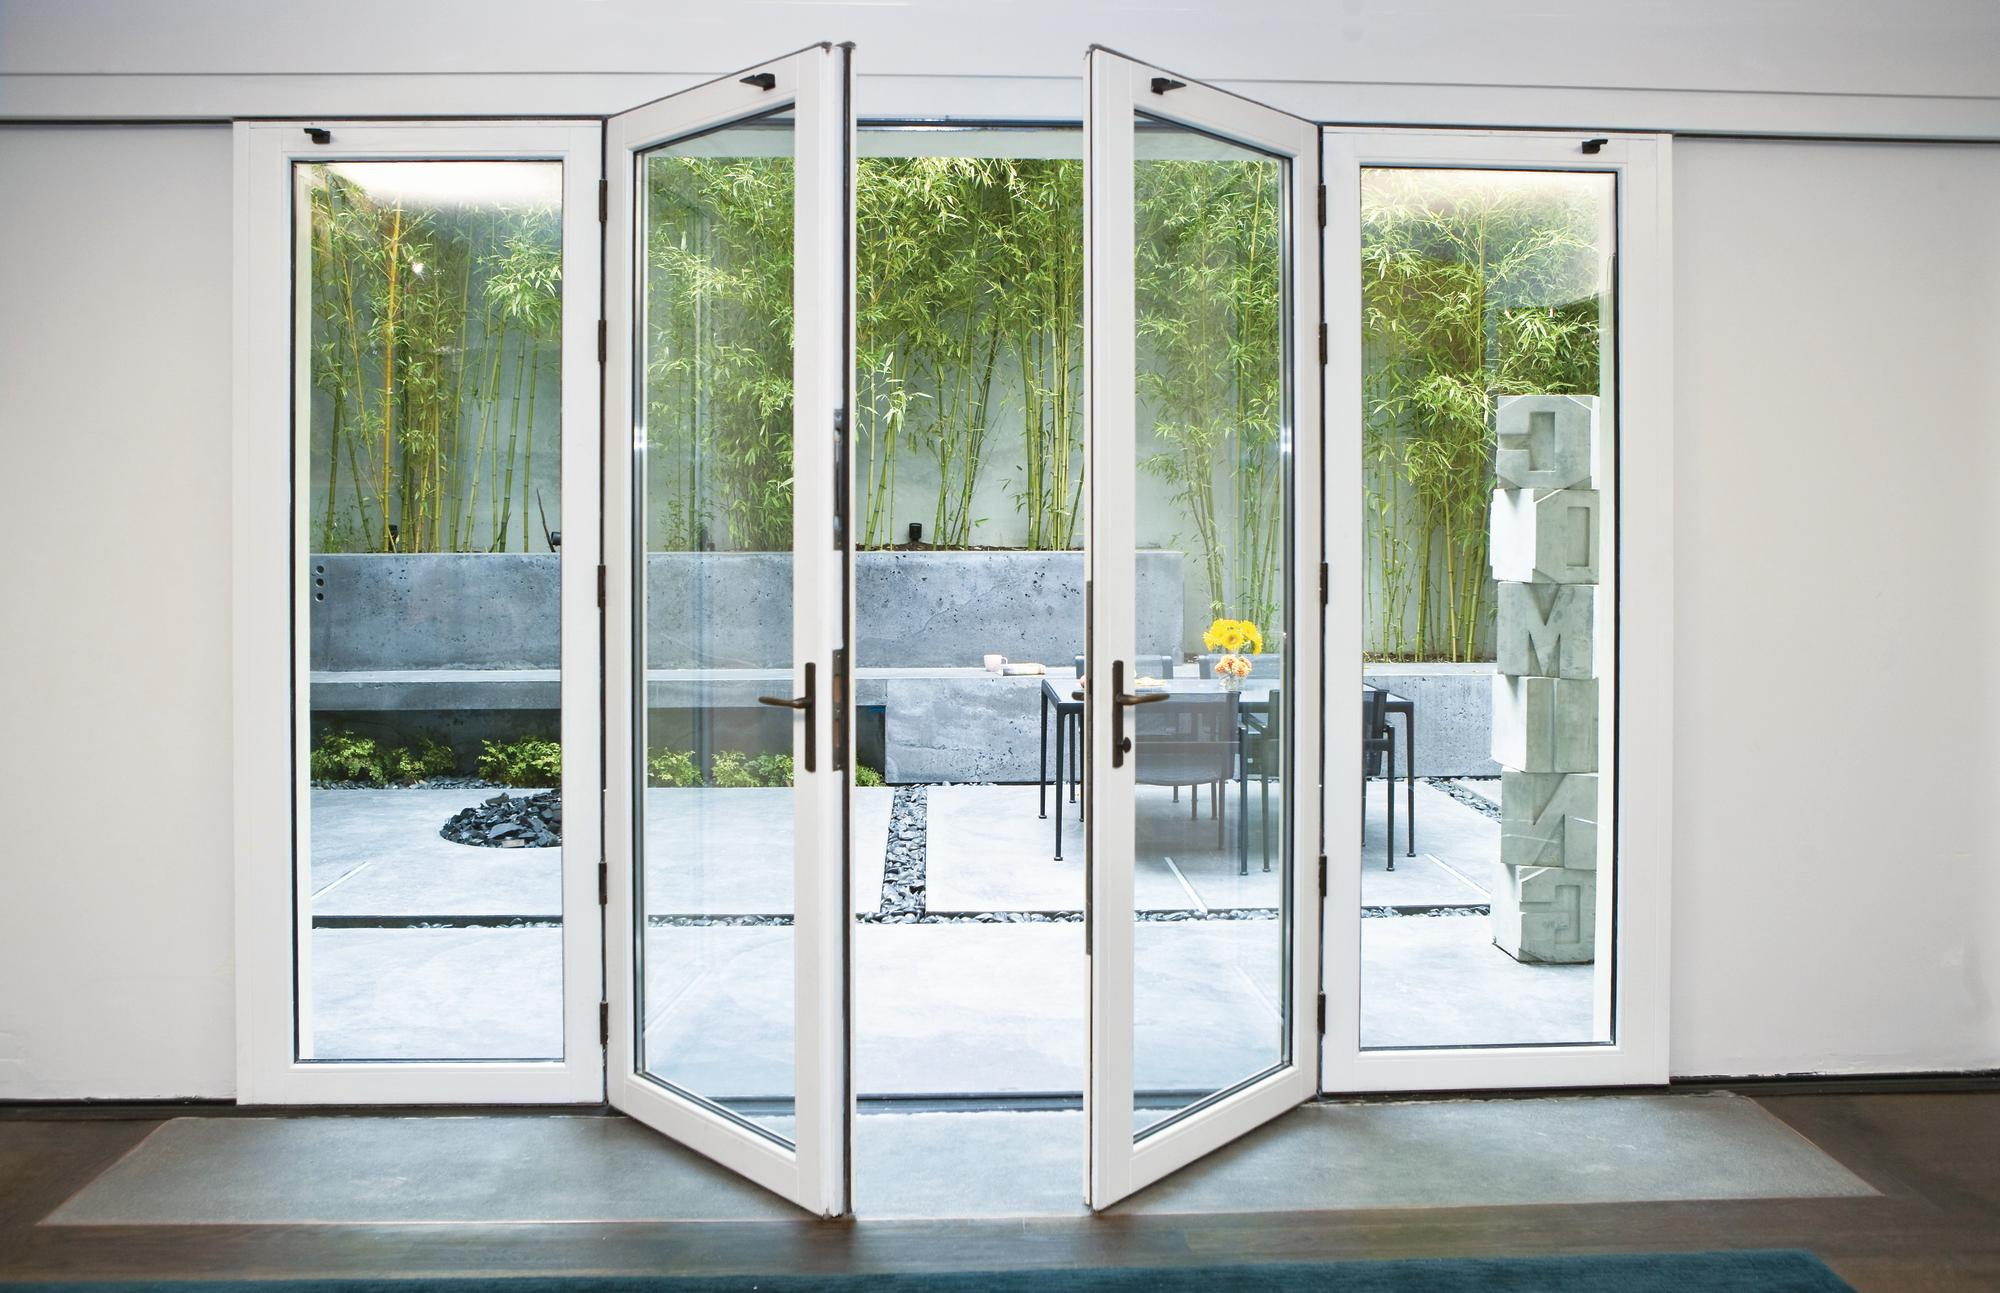 Sliding glass doors open both sides sliding door designs sliding glass doors open both sides door designs planetlyrics Gallery